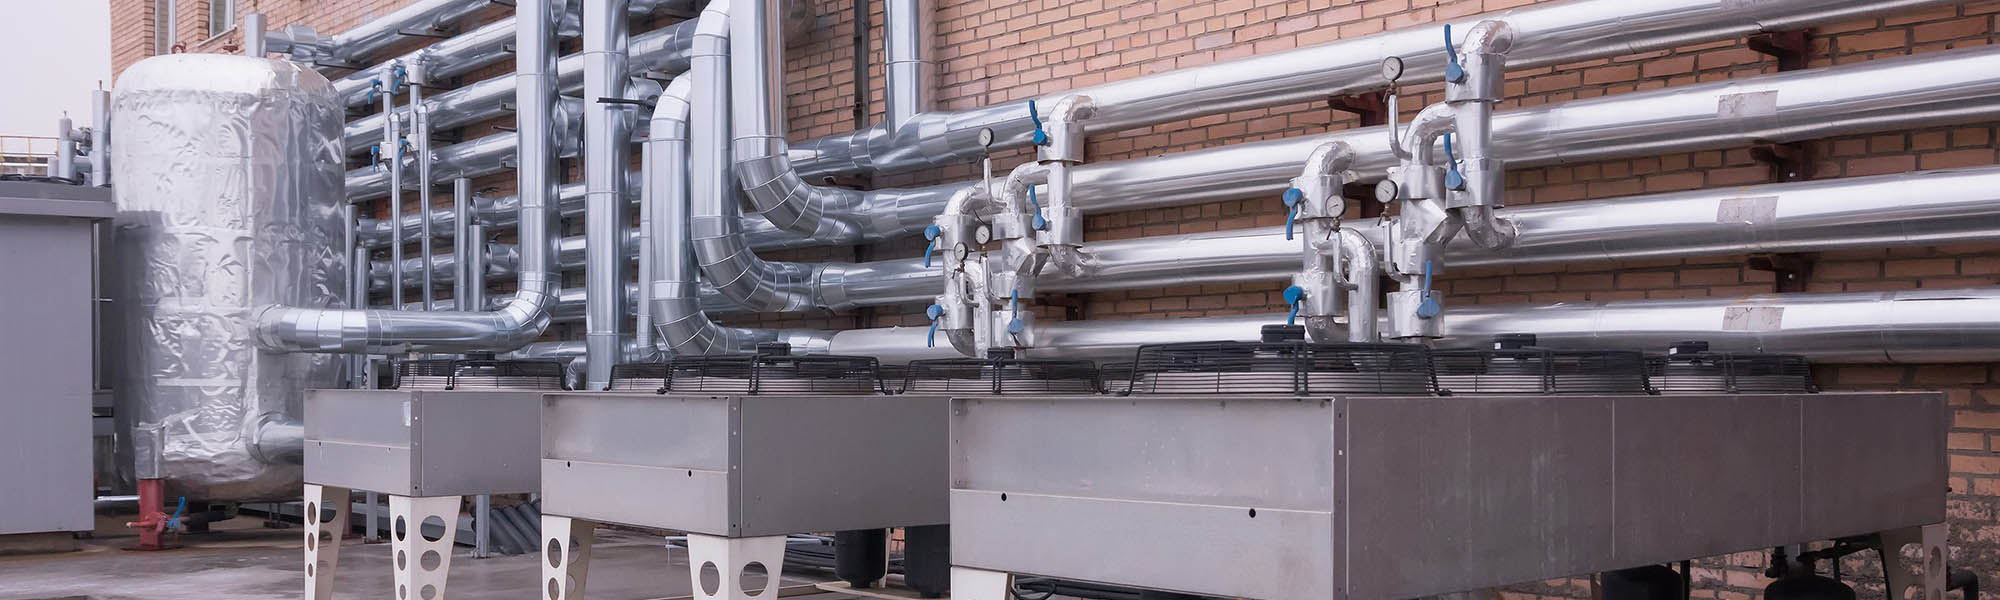 Industrial Pipework Nottingham